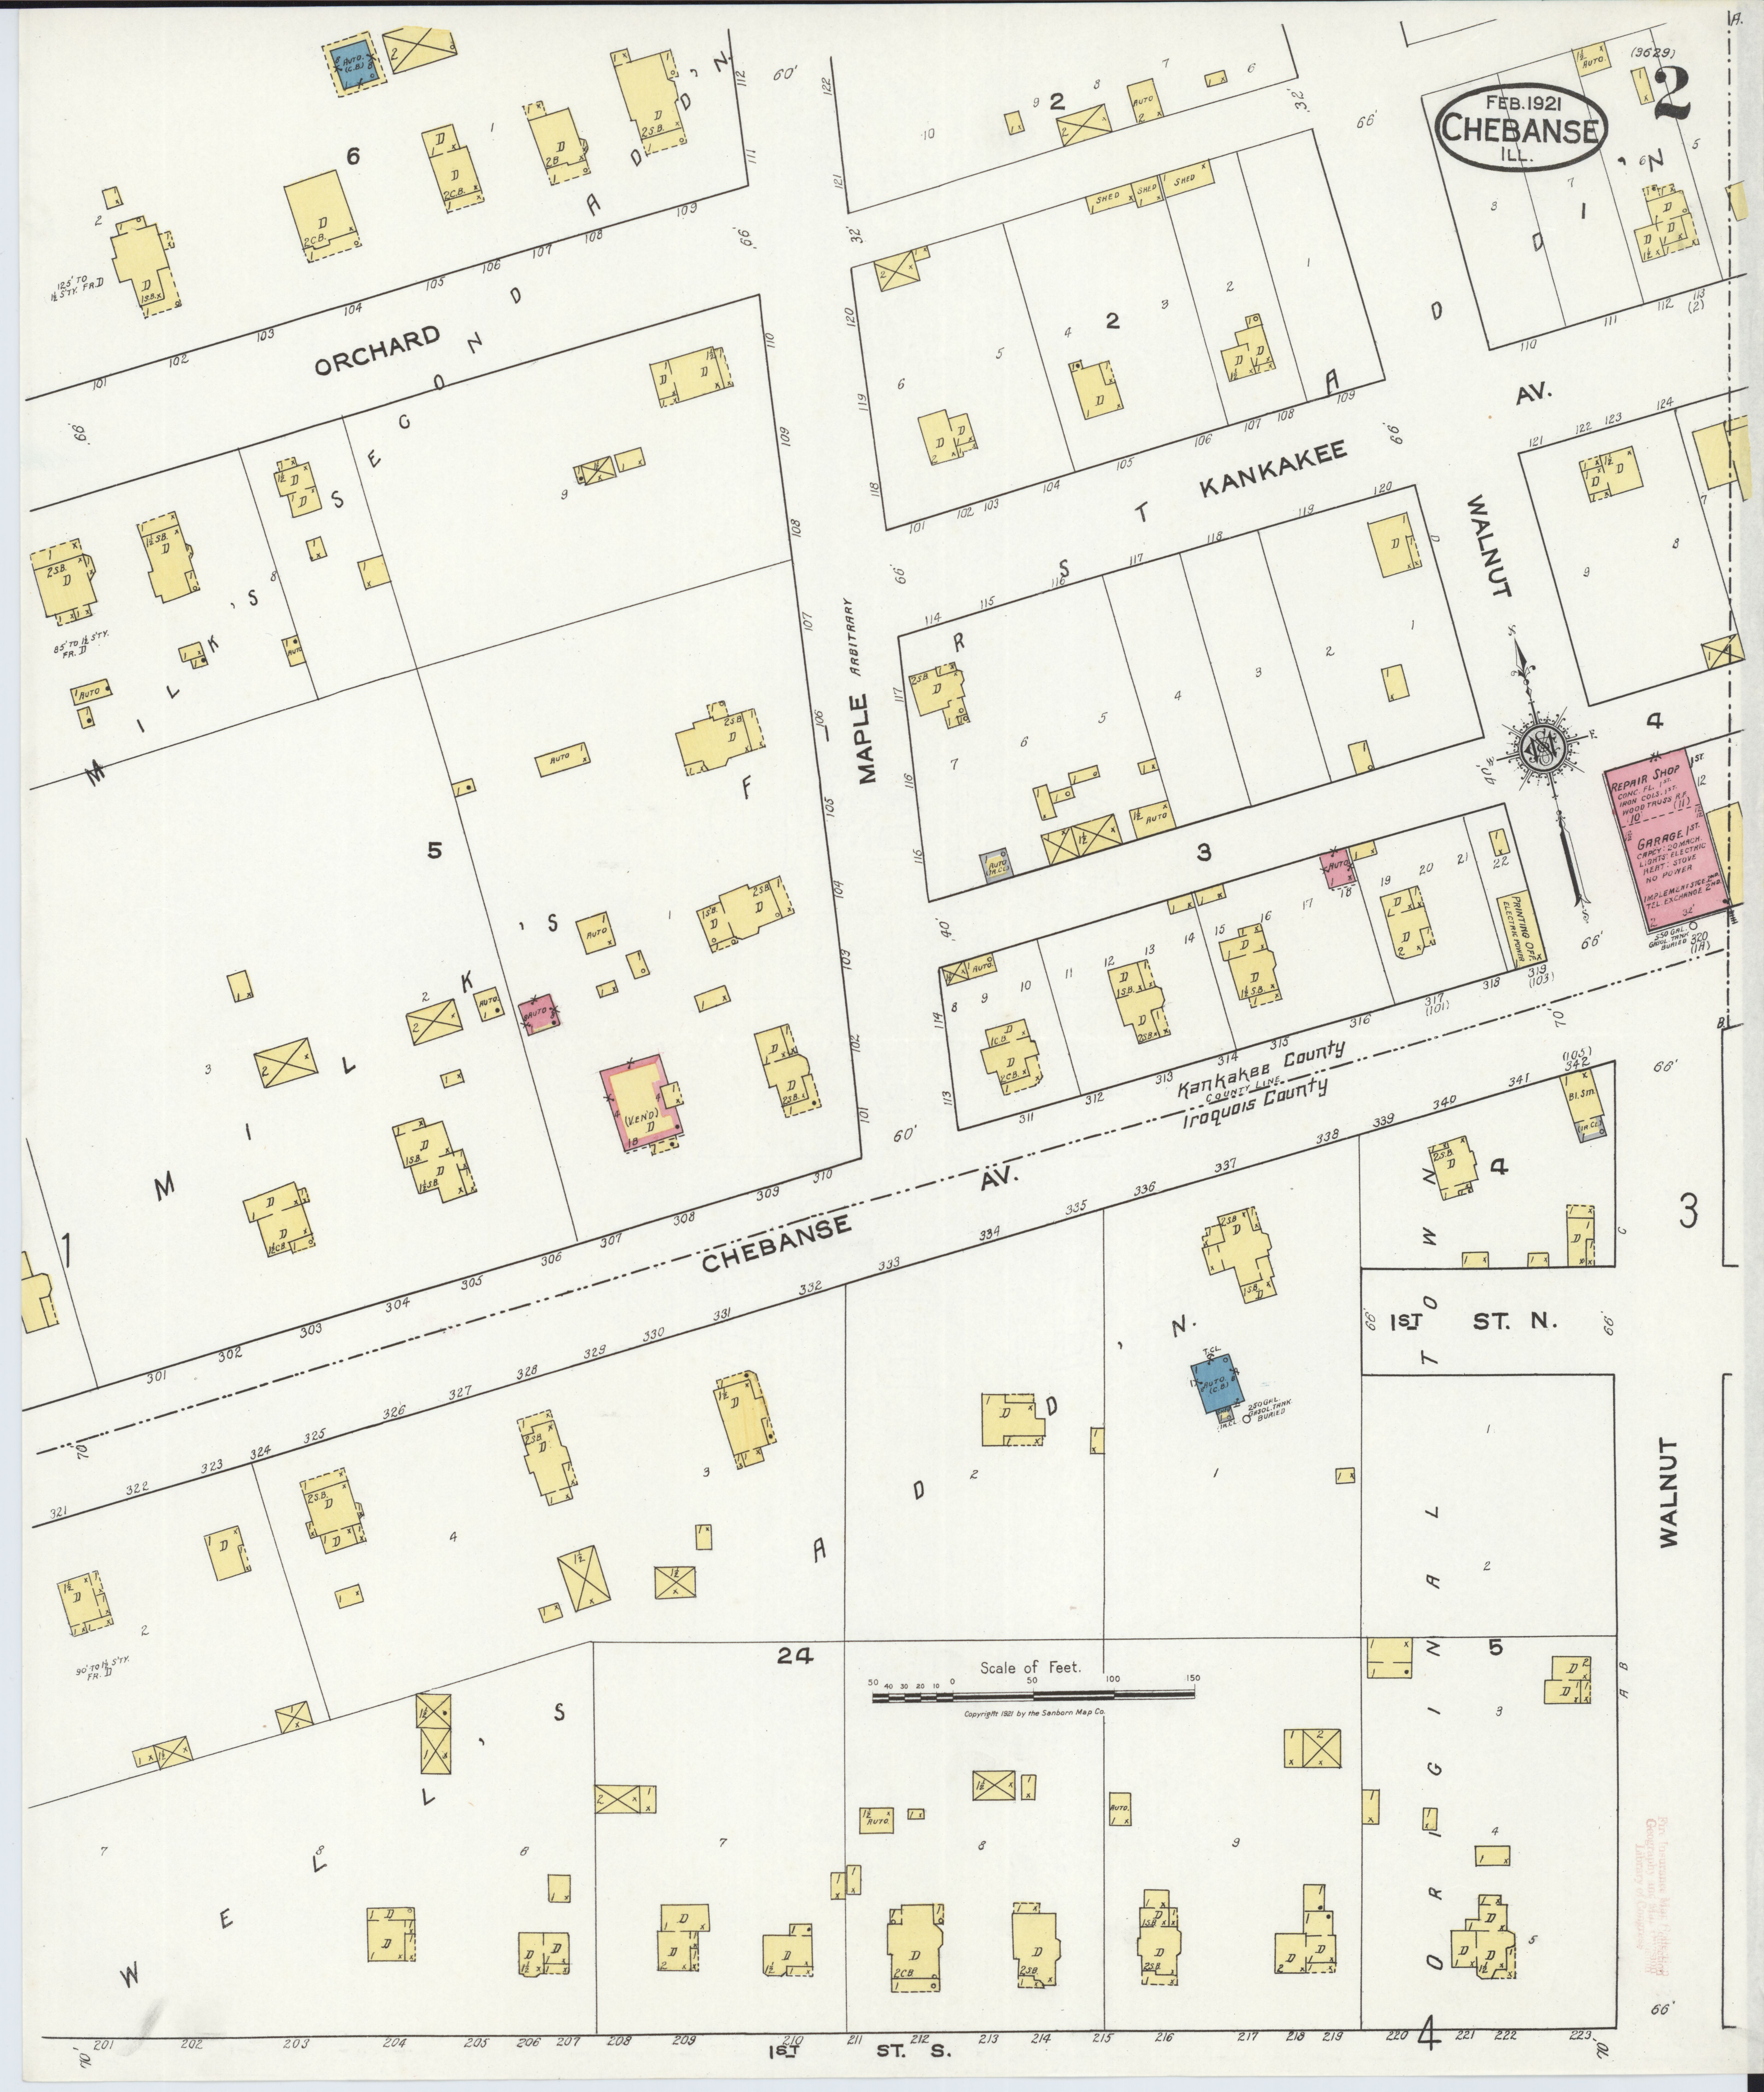 File:Sanborn Fire Insurance Map from Chebanse, Iroquois And Kankakee on grand rapids county map, boone county map, wheaton county map, lincoln county map, tinley park county map, wheeling county map, il county map, crenshaw county map, piatt county map, dayton county map, elk grove village county map, grundy county map, rockford county map, cincinnati county map, peoria county map, sioux city county map, brown county map, jefferson county map, wilmington county map, effingham county map,